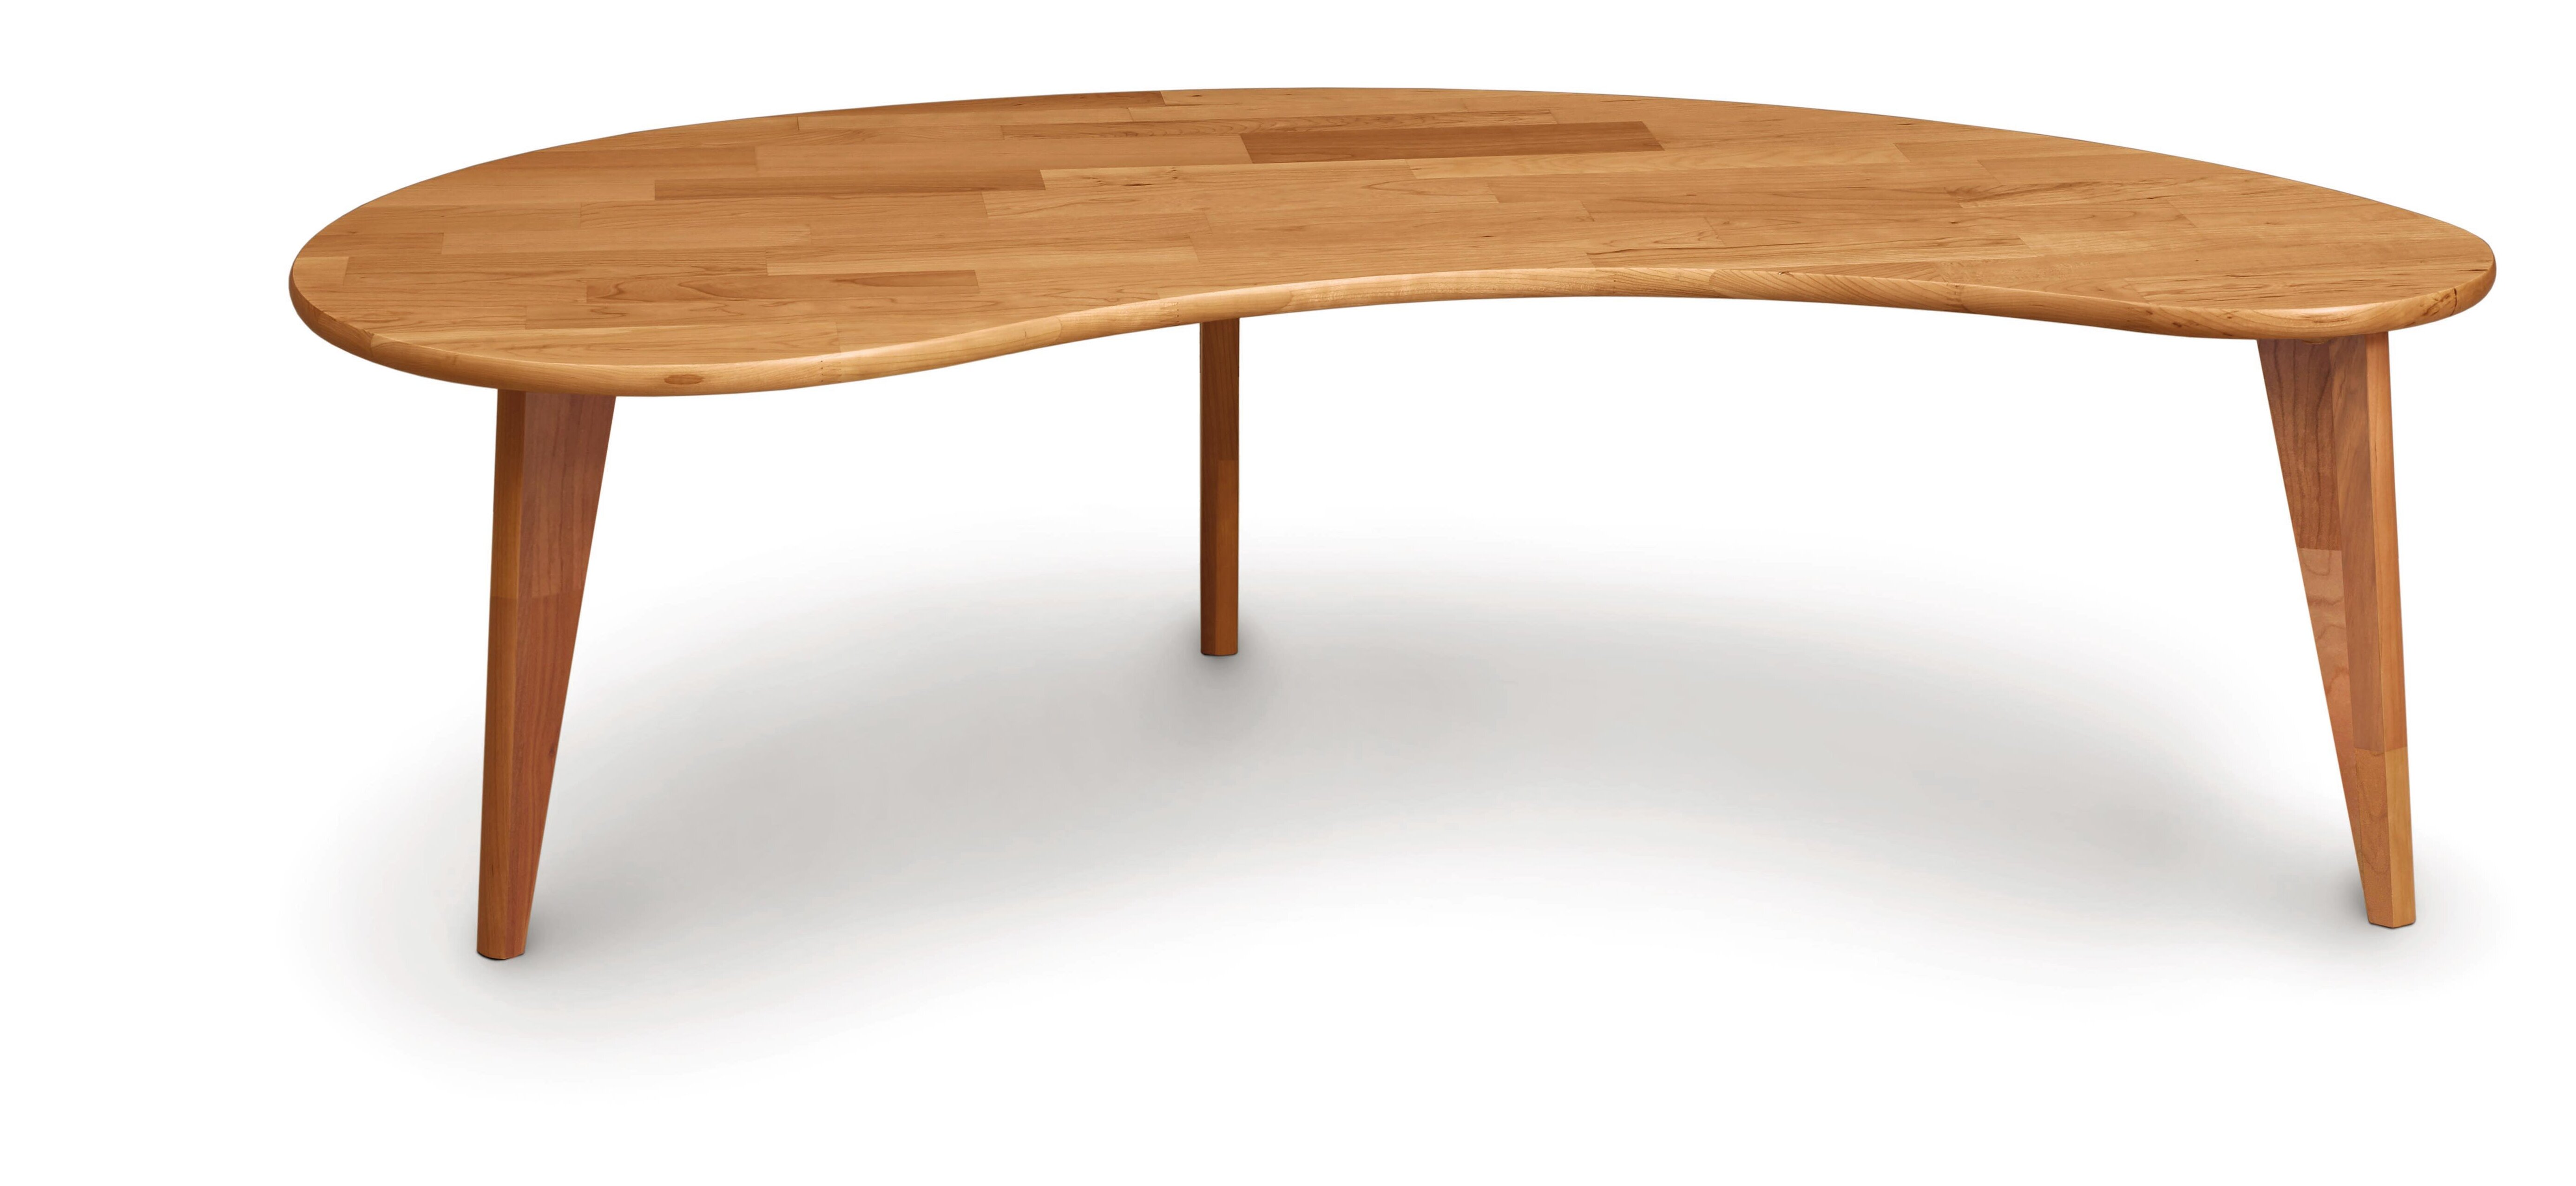 Copeland Furniture Essentials Kidney Shaped Coffee Table & Reviews